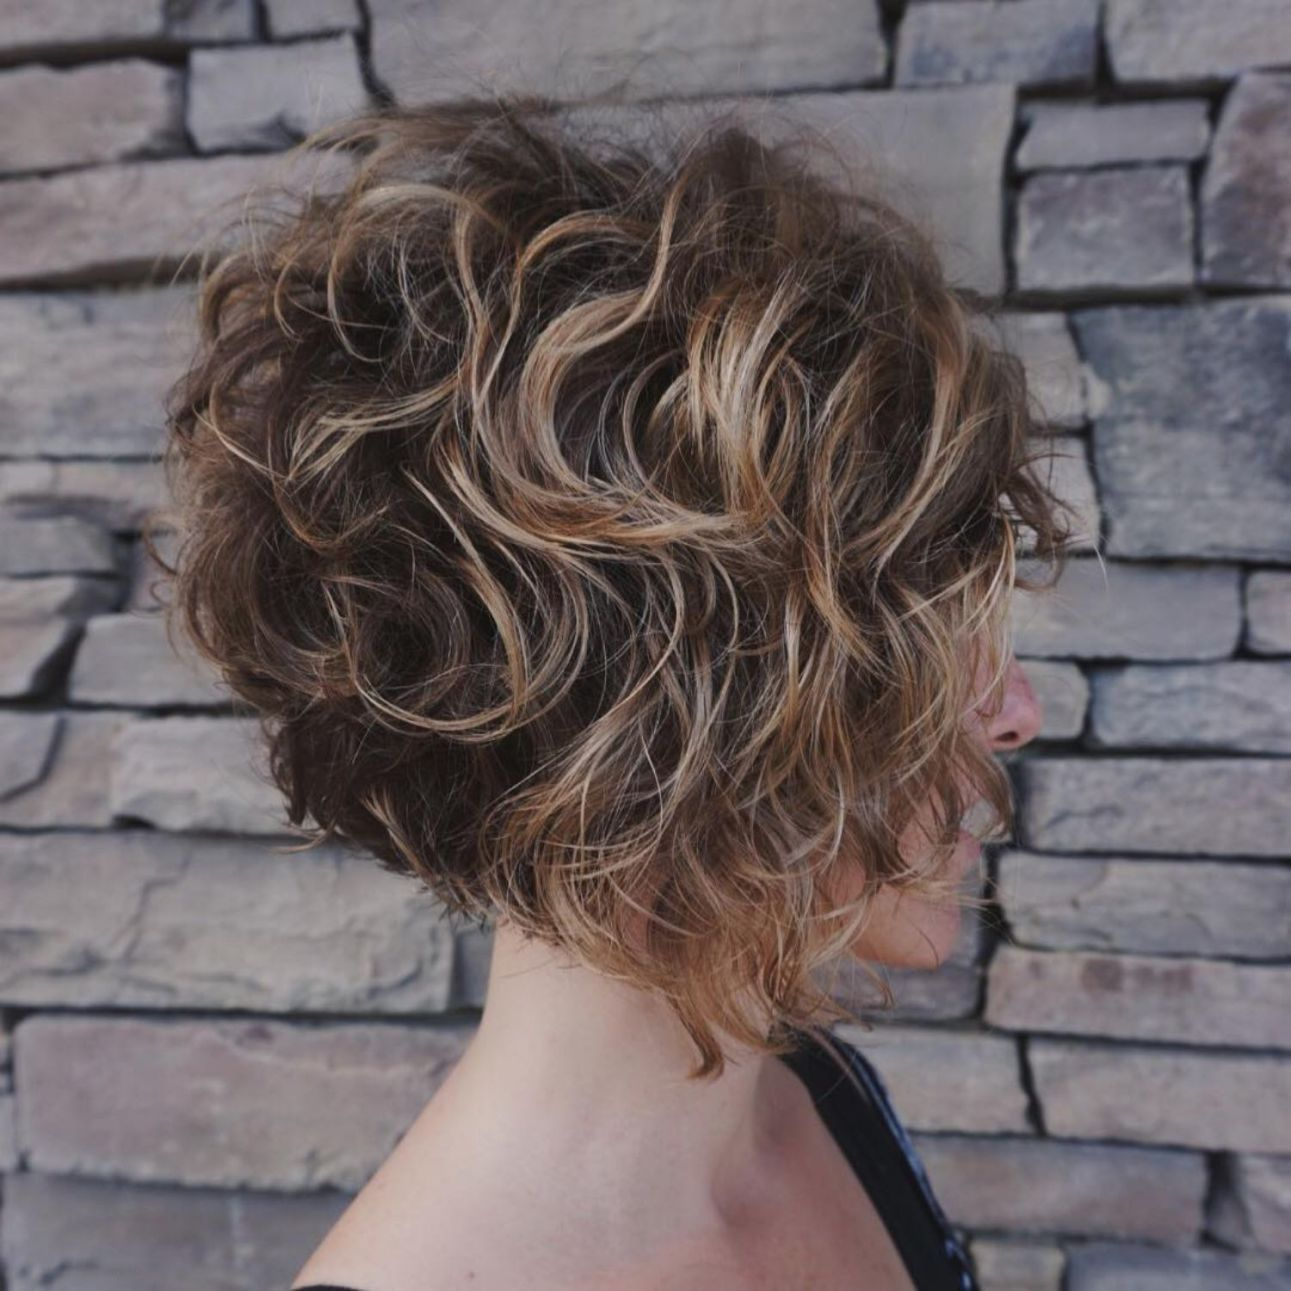 65 Different Versions of Curly Bob Hairstyle   Short curly bob hairstyles, Hair styles, Thick ...